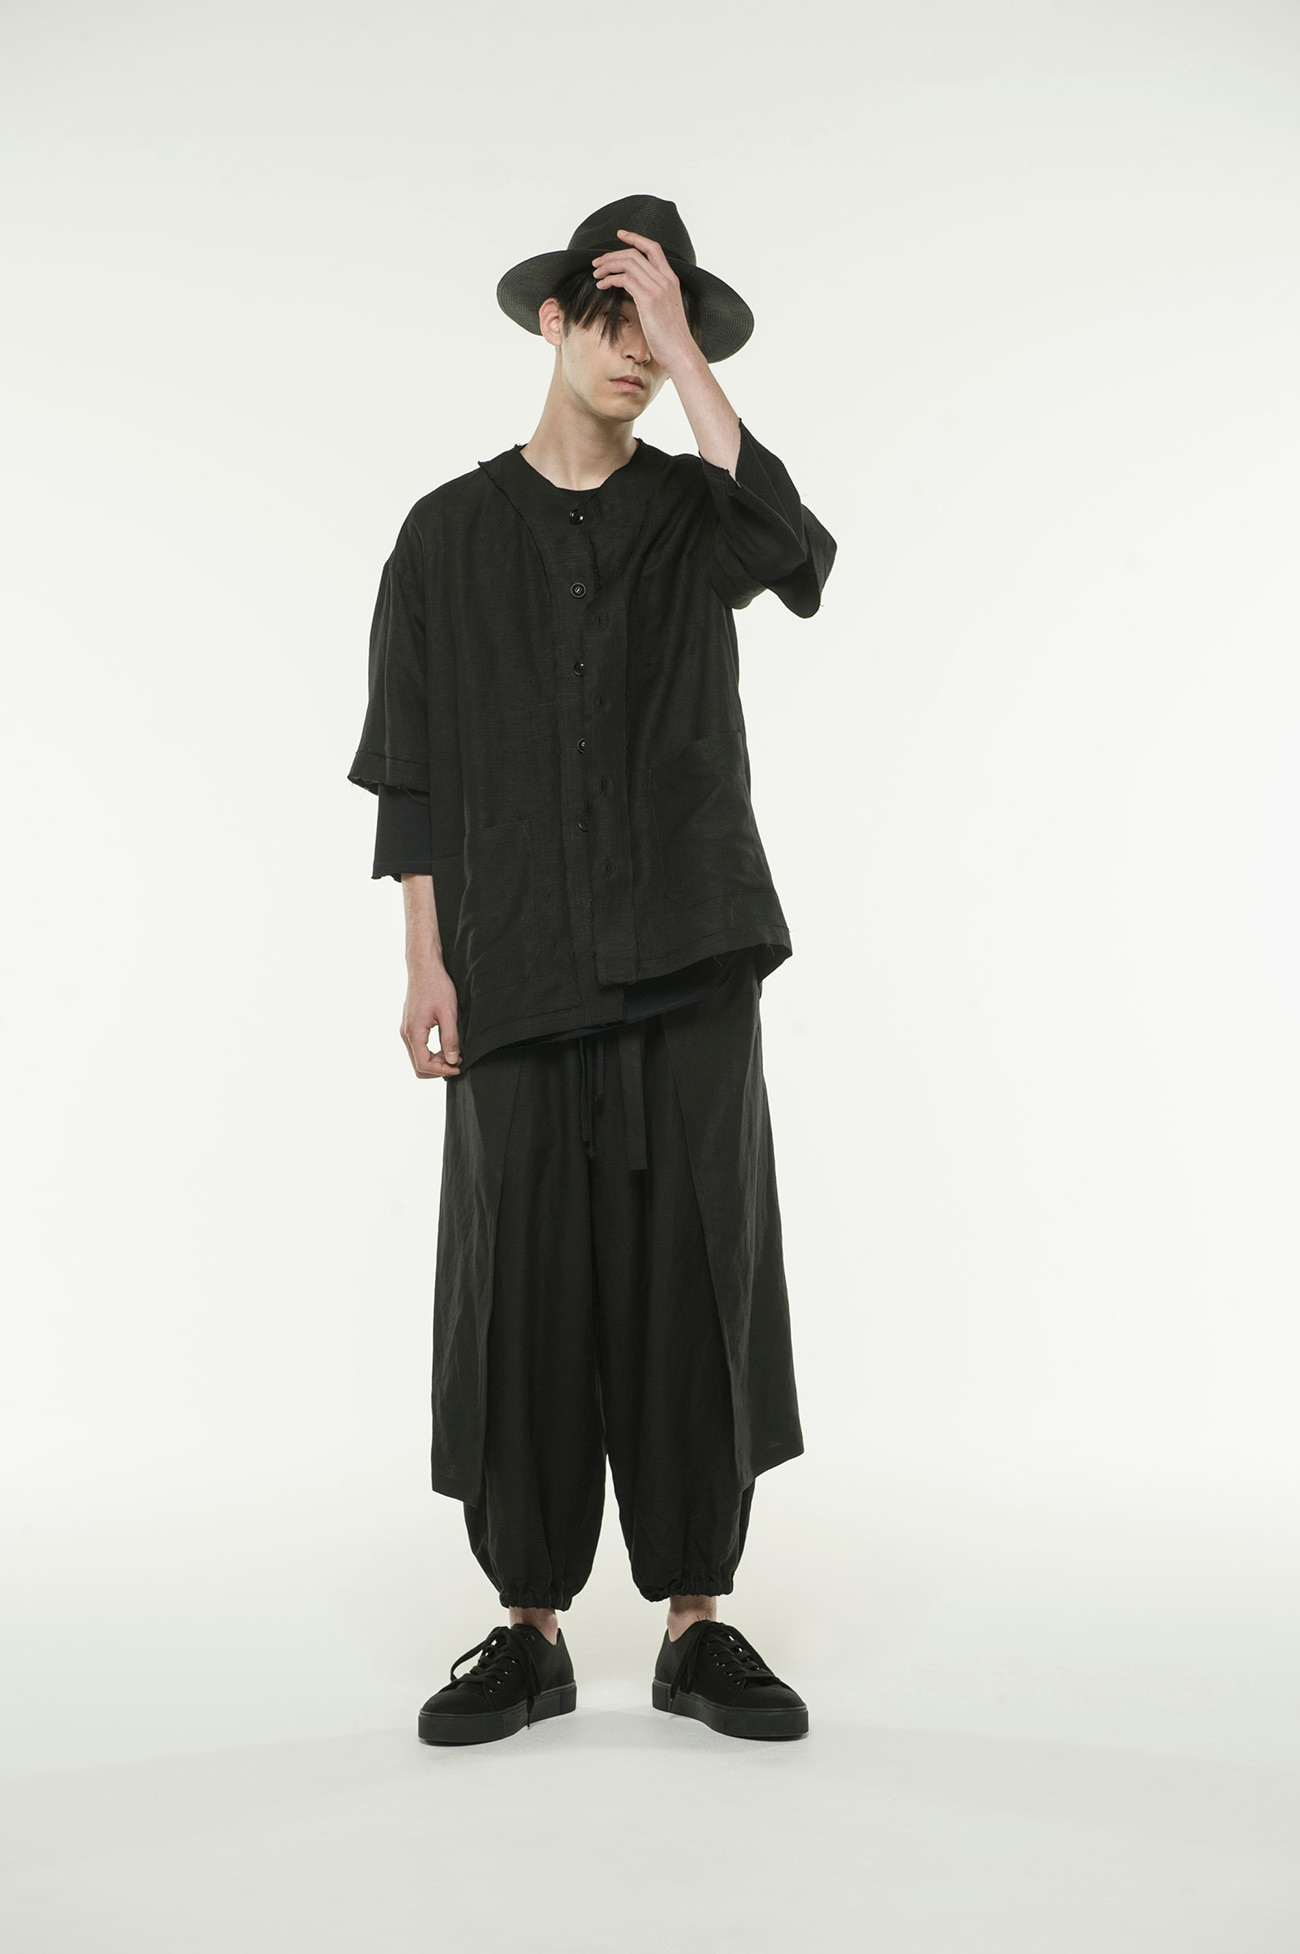 Rayon Linen Easy Cross・B Hem Both Sides Wrap Pants